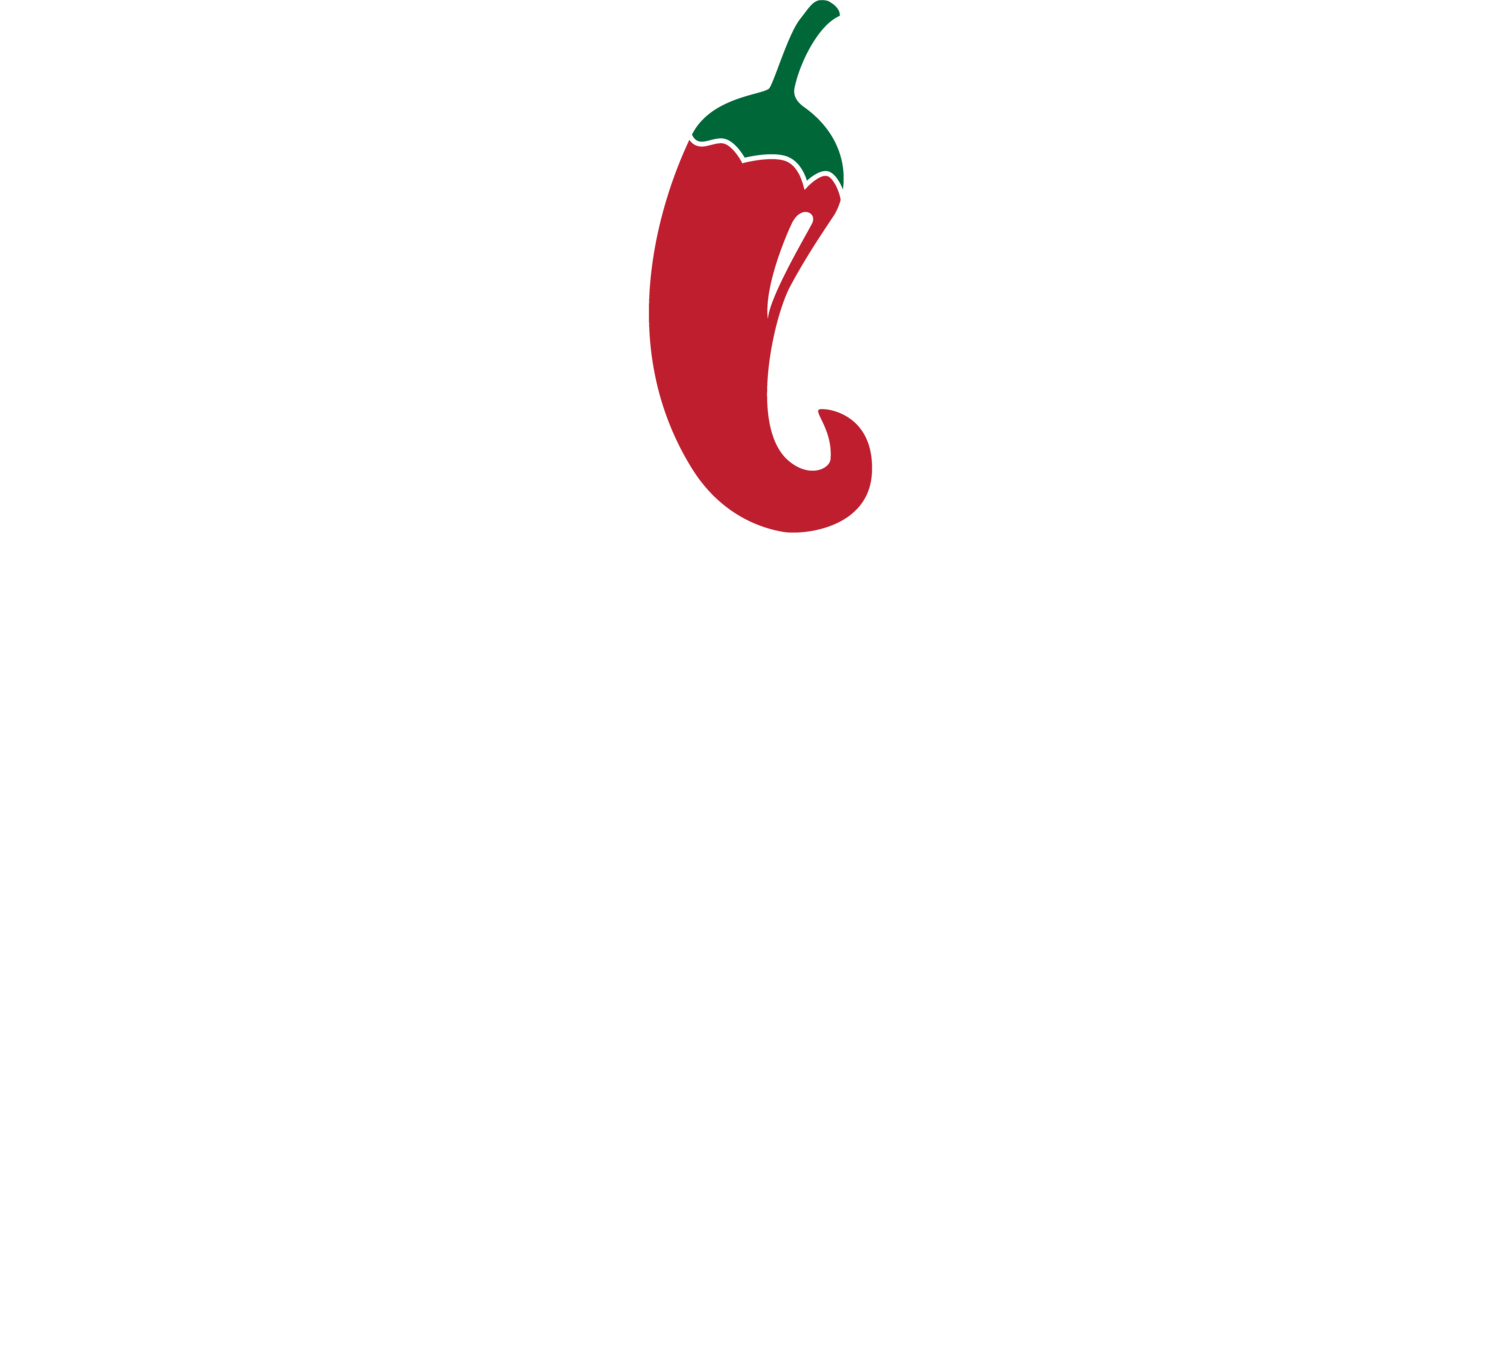 Chilli Pepper Productions